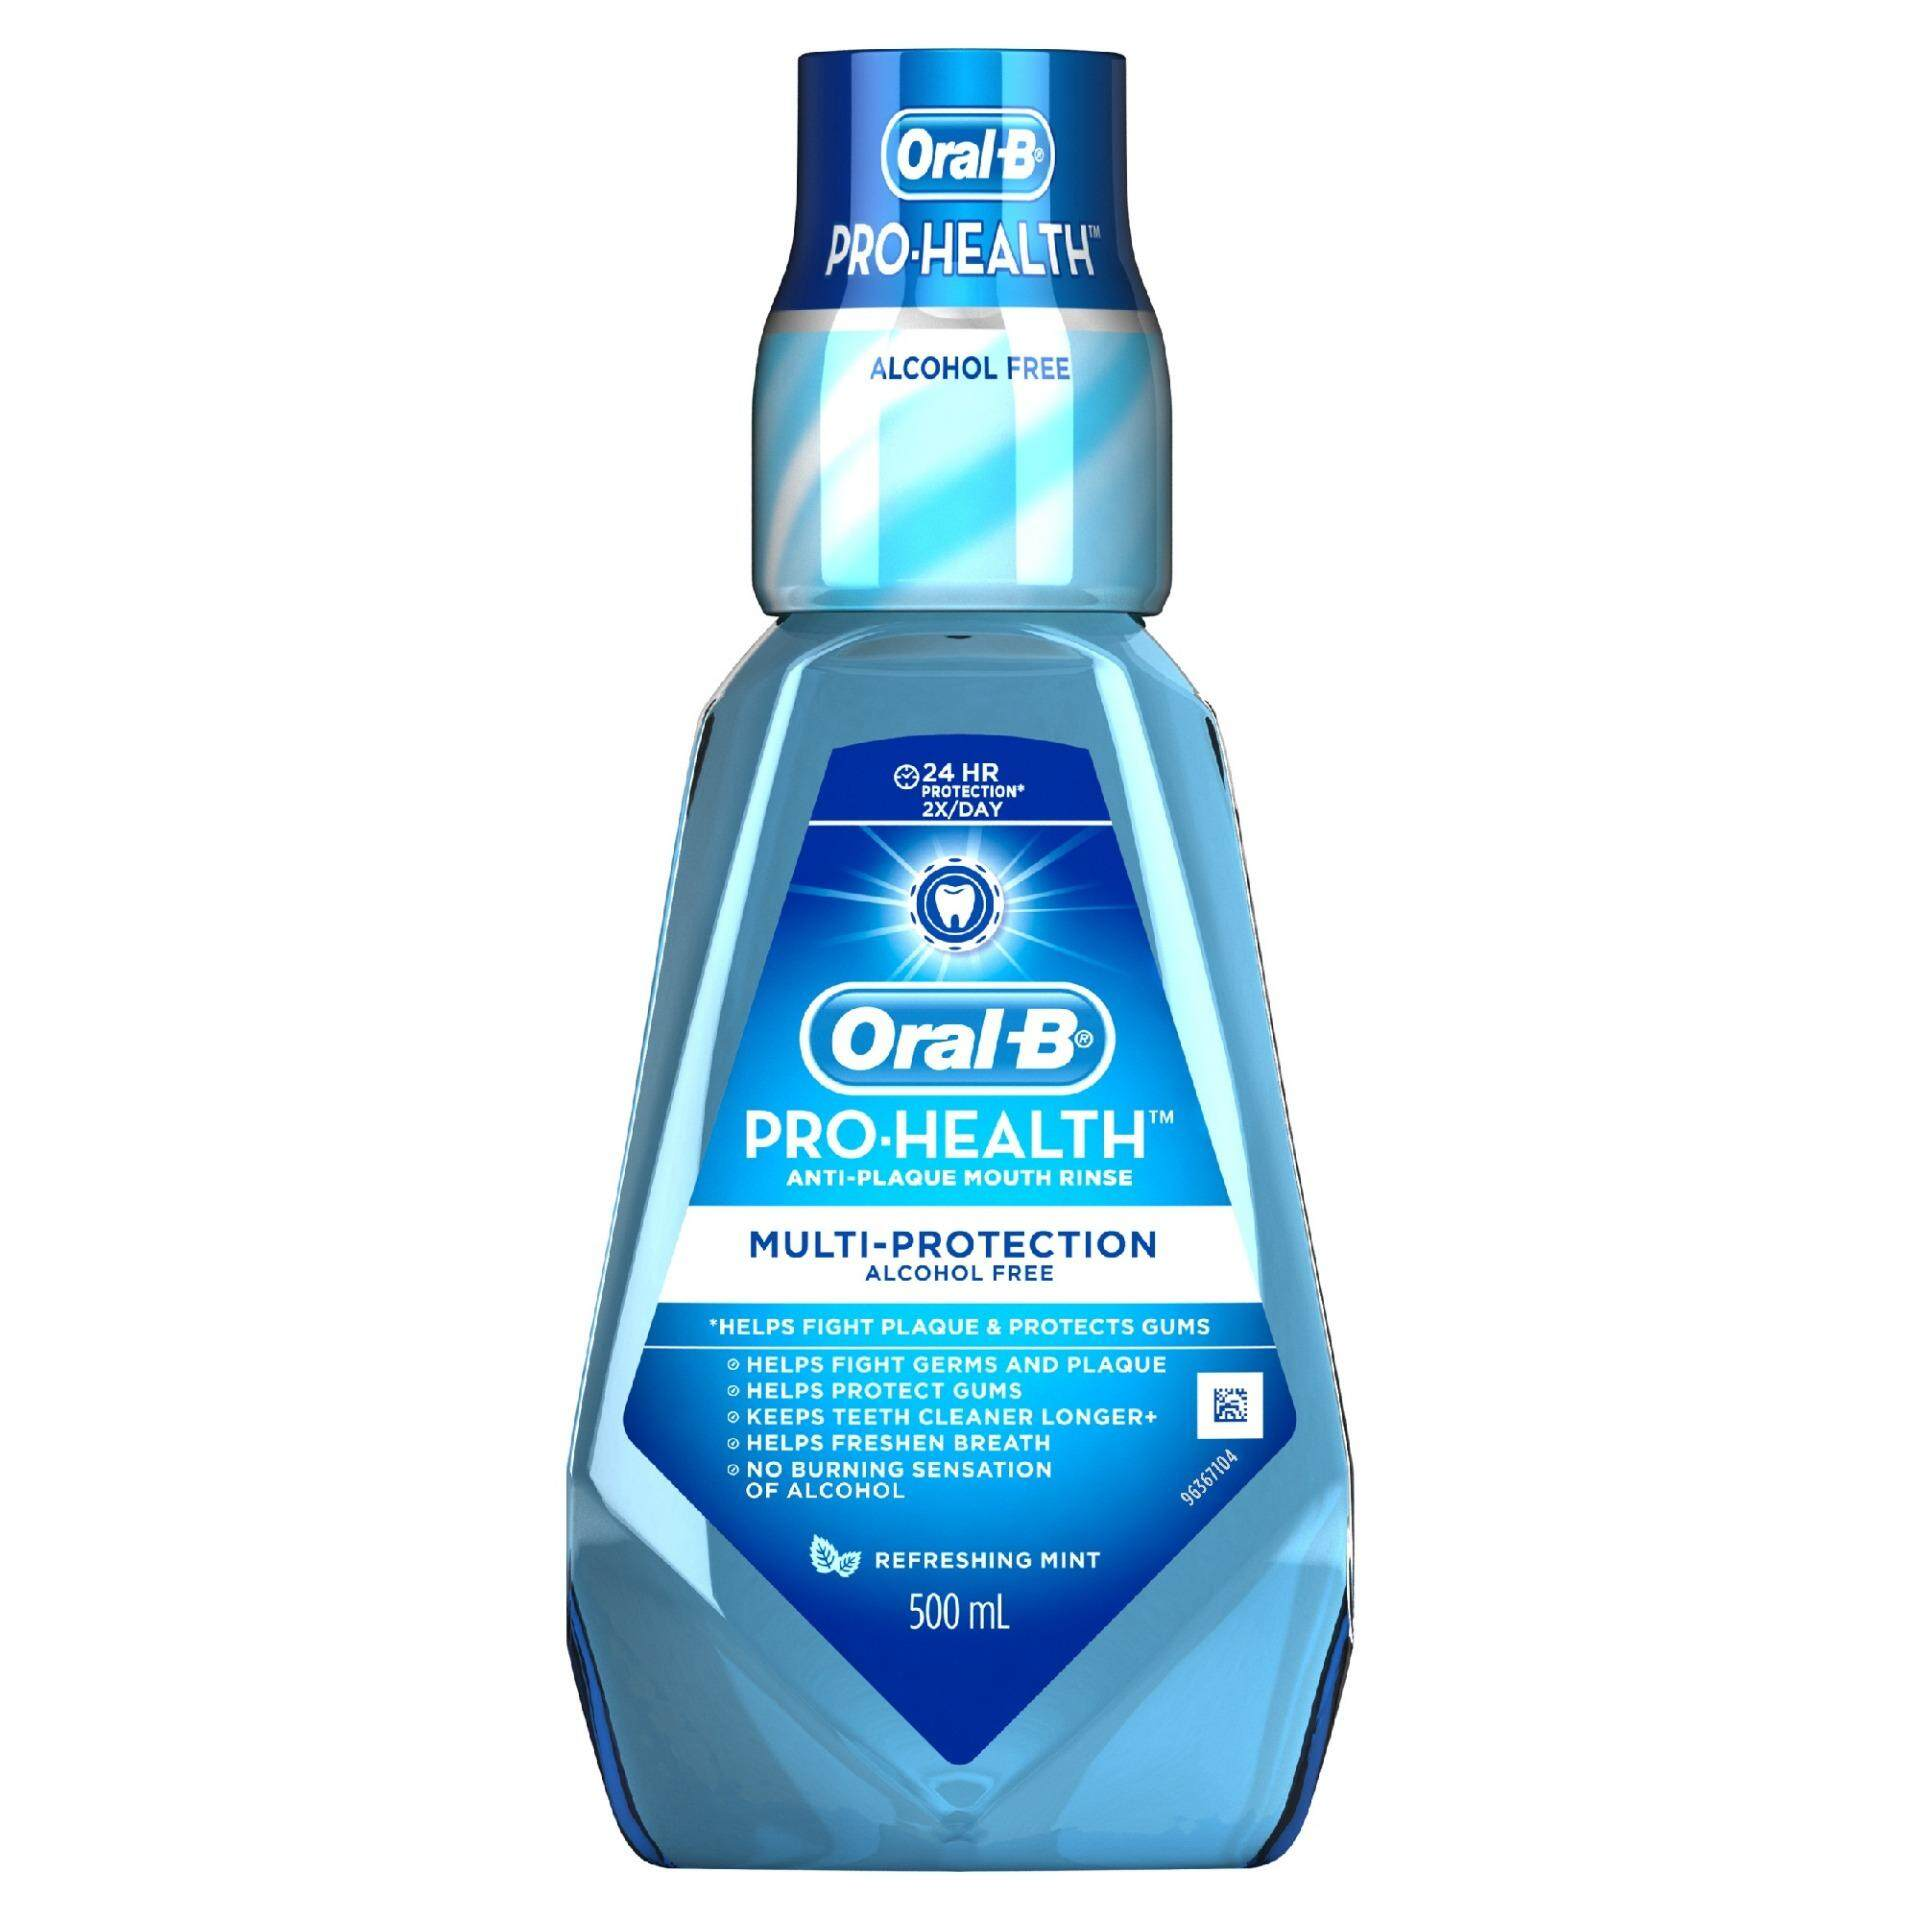 Oral-B Pro-Health Anti-Plaque Multi-Protection Mouth Rinse (Refreshing Mint) 500ml